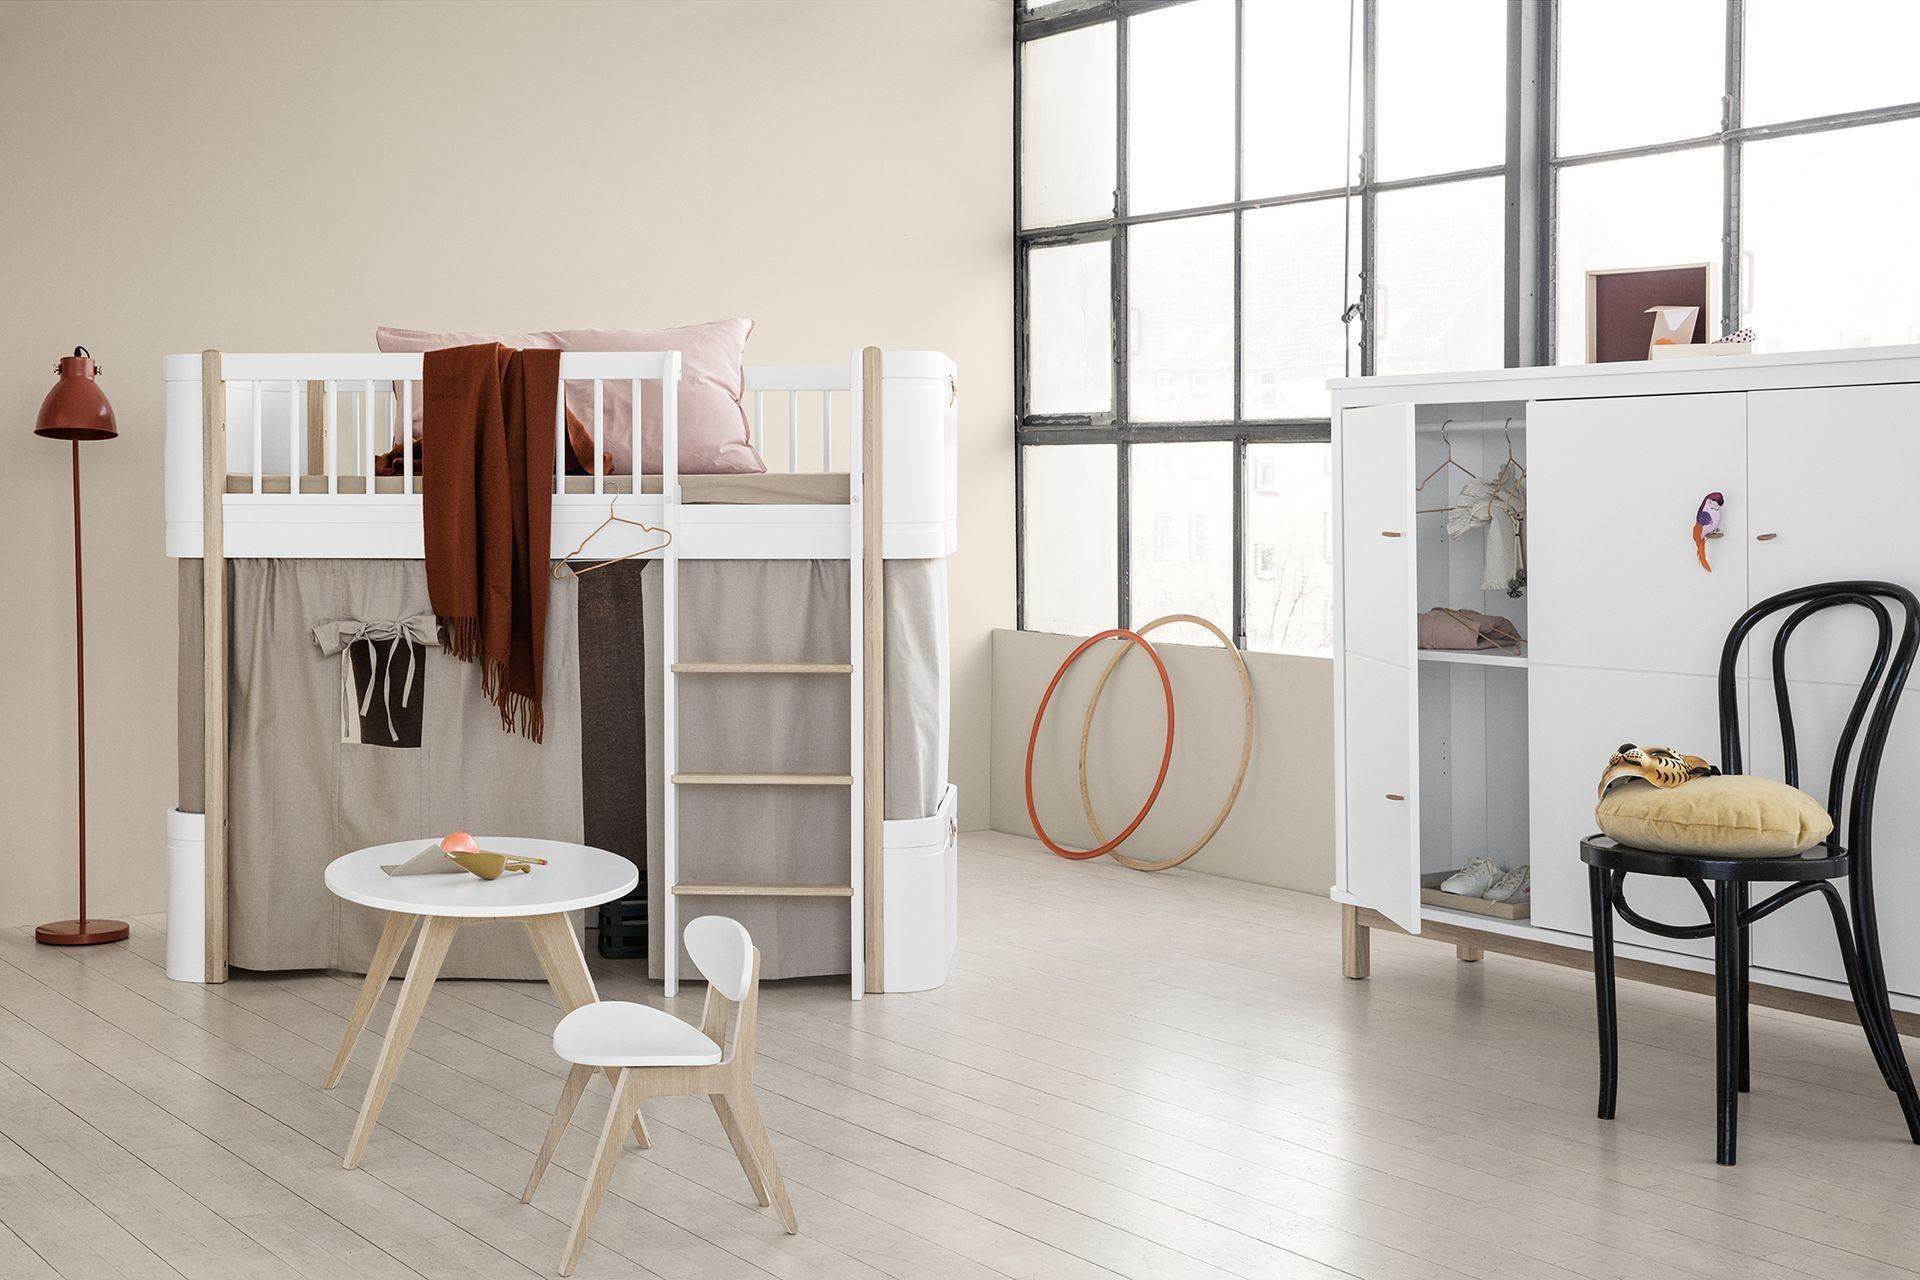 Oliver Furniture Etagenbett : Wood mini halbhohes hochbett oliver furniture kleine fabriek